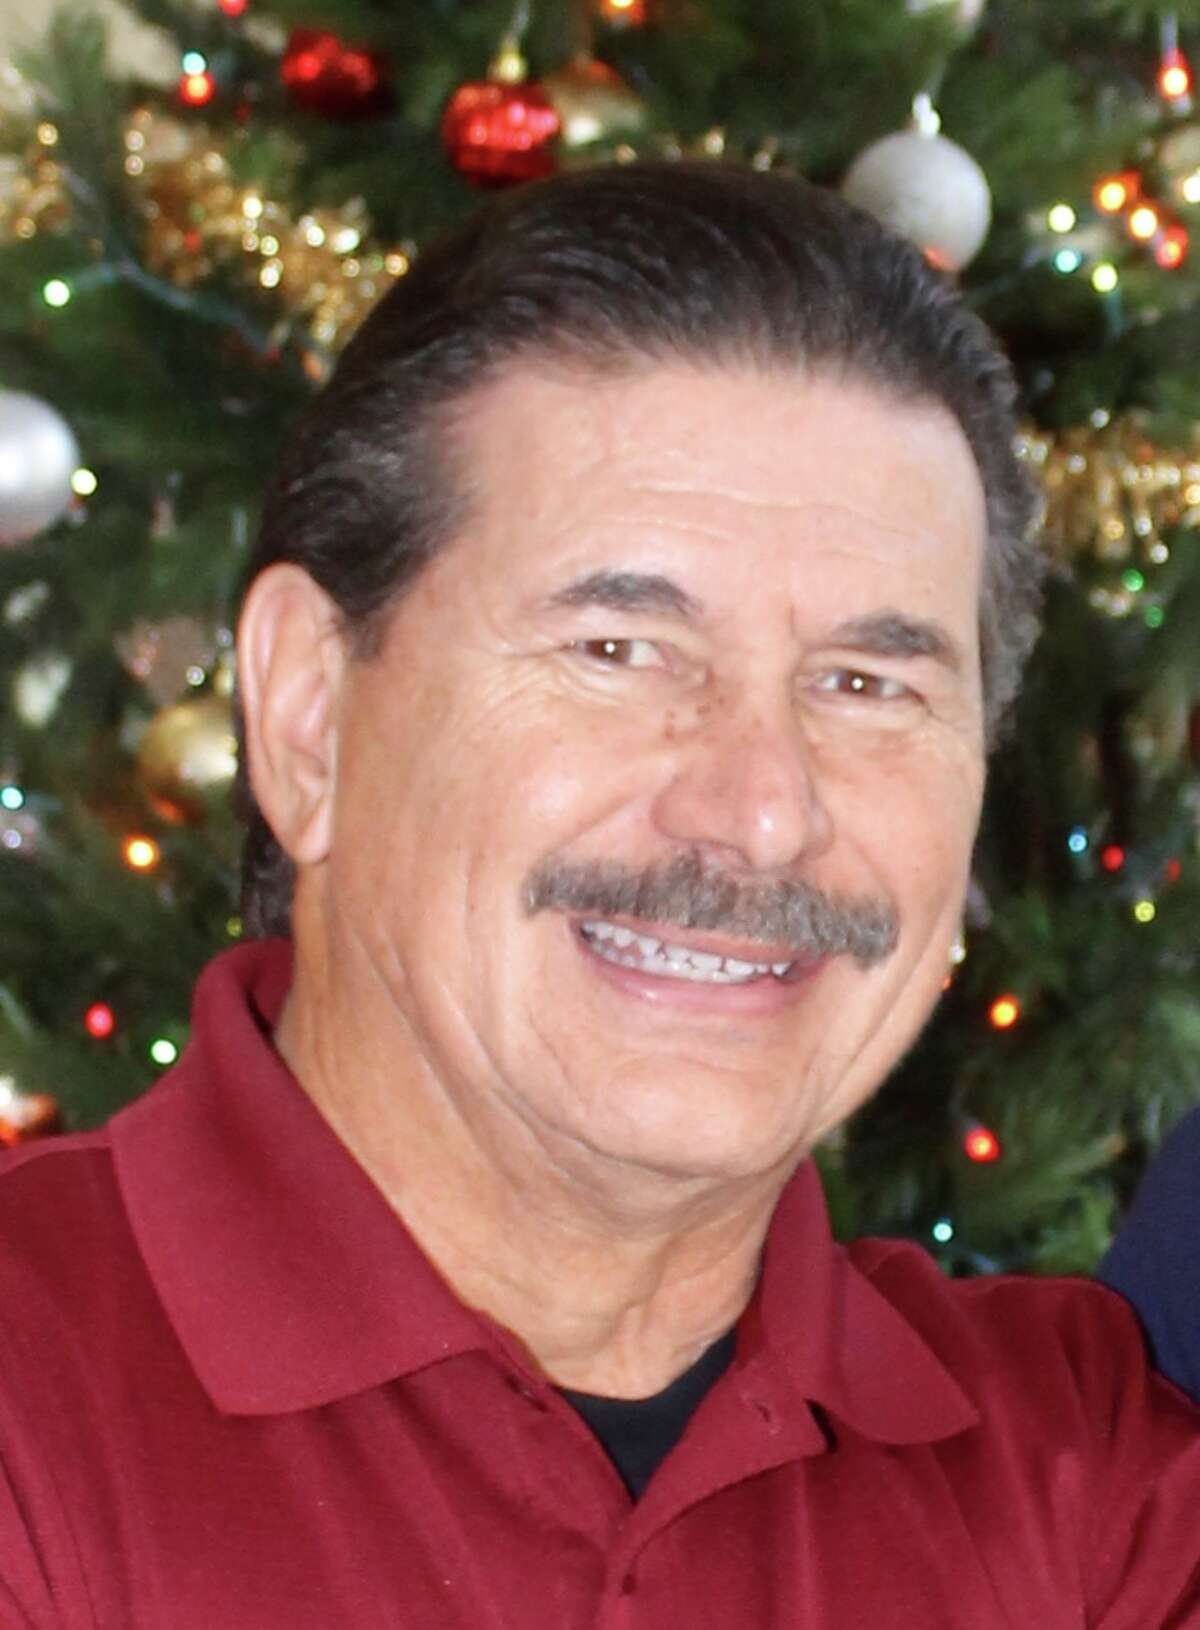 James Garza, 67, was fatally shot during an argument over a handicapped parking space. The case against the gunman, who had a concealed handgun license, is scheduled to be heard by a Harris County grand jury.